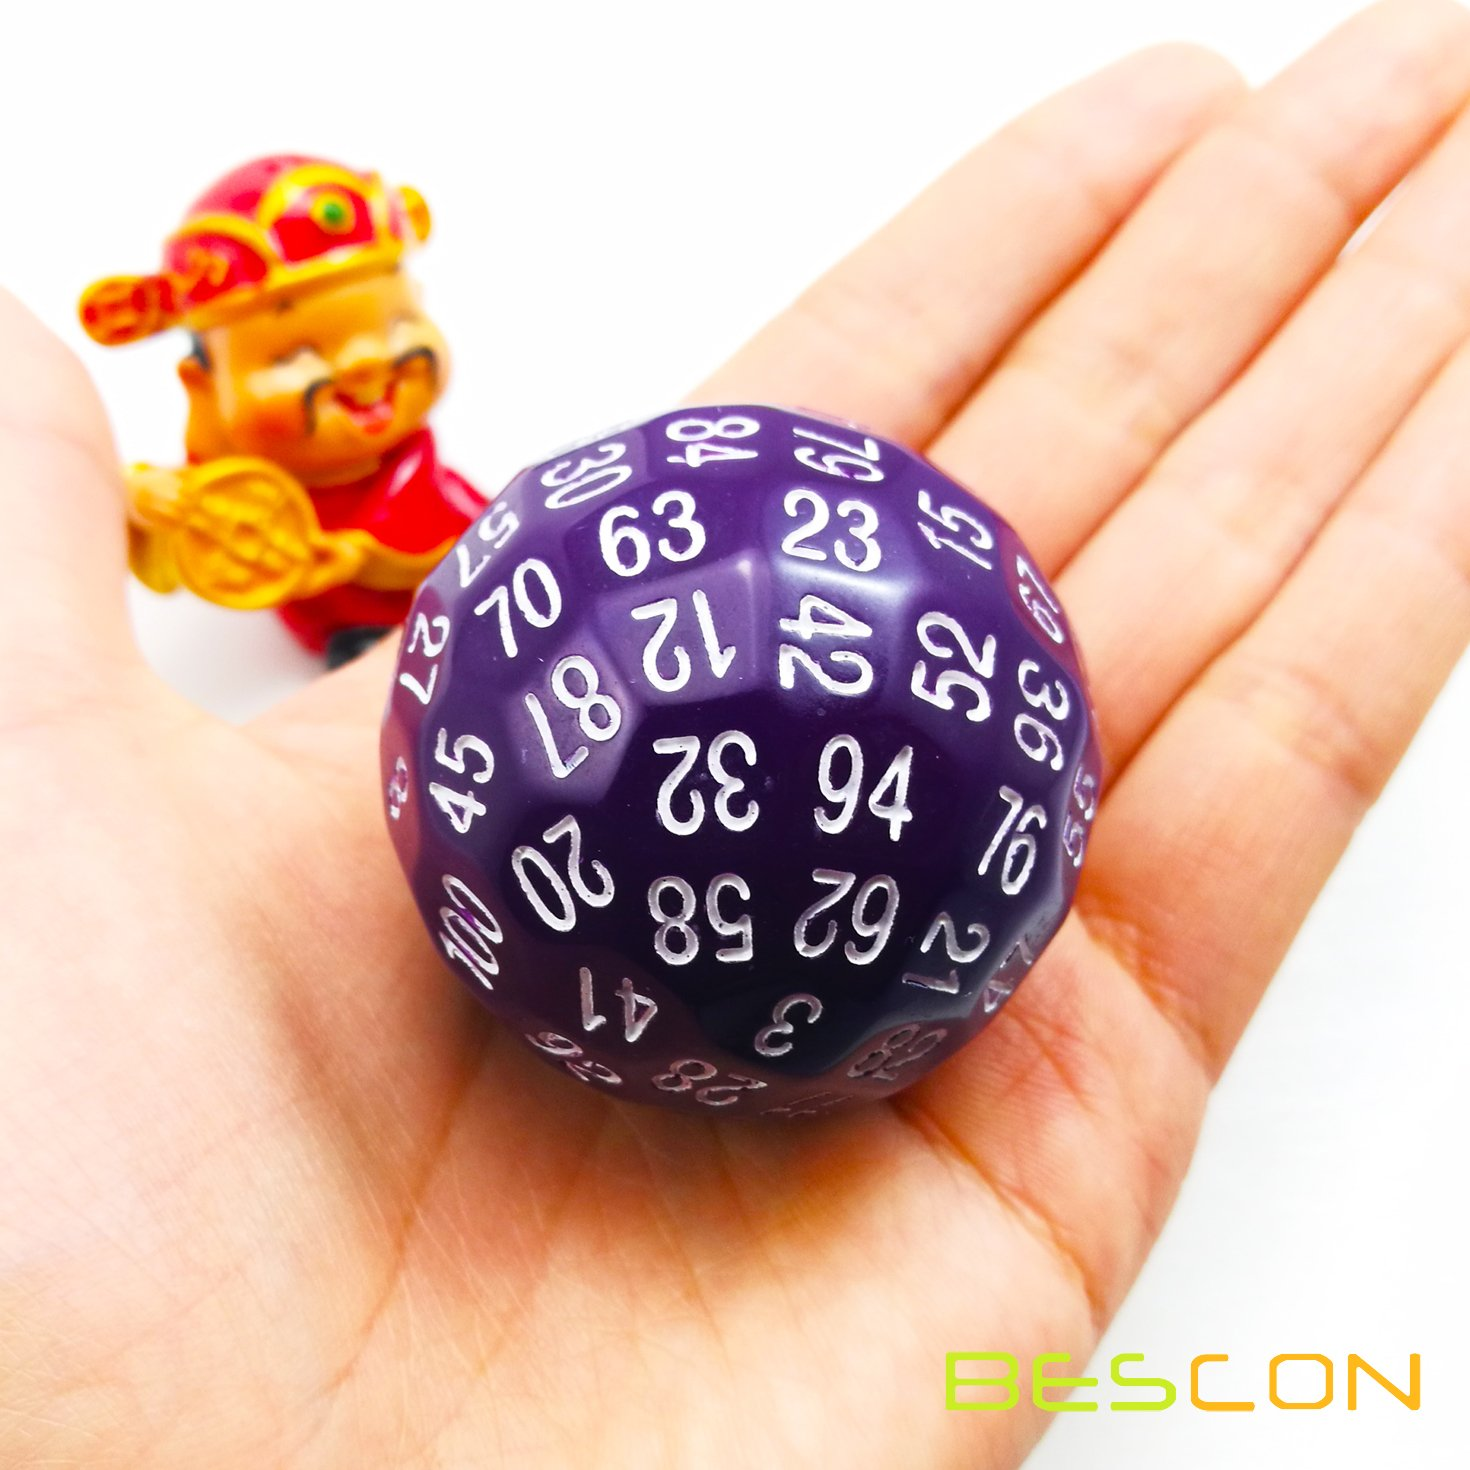 Bescon Polyhedral Dice 100 Sides Dice 100-Sided Cube of Purple Color D100 Game Dice D100 die 100 Sided Cube